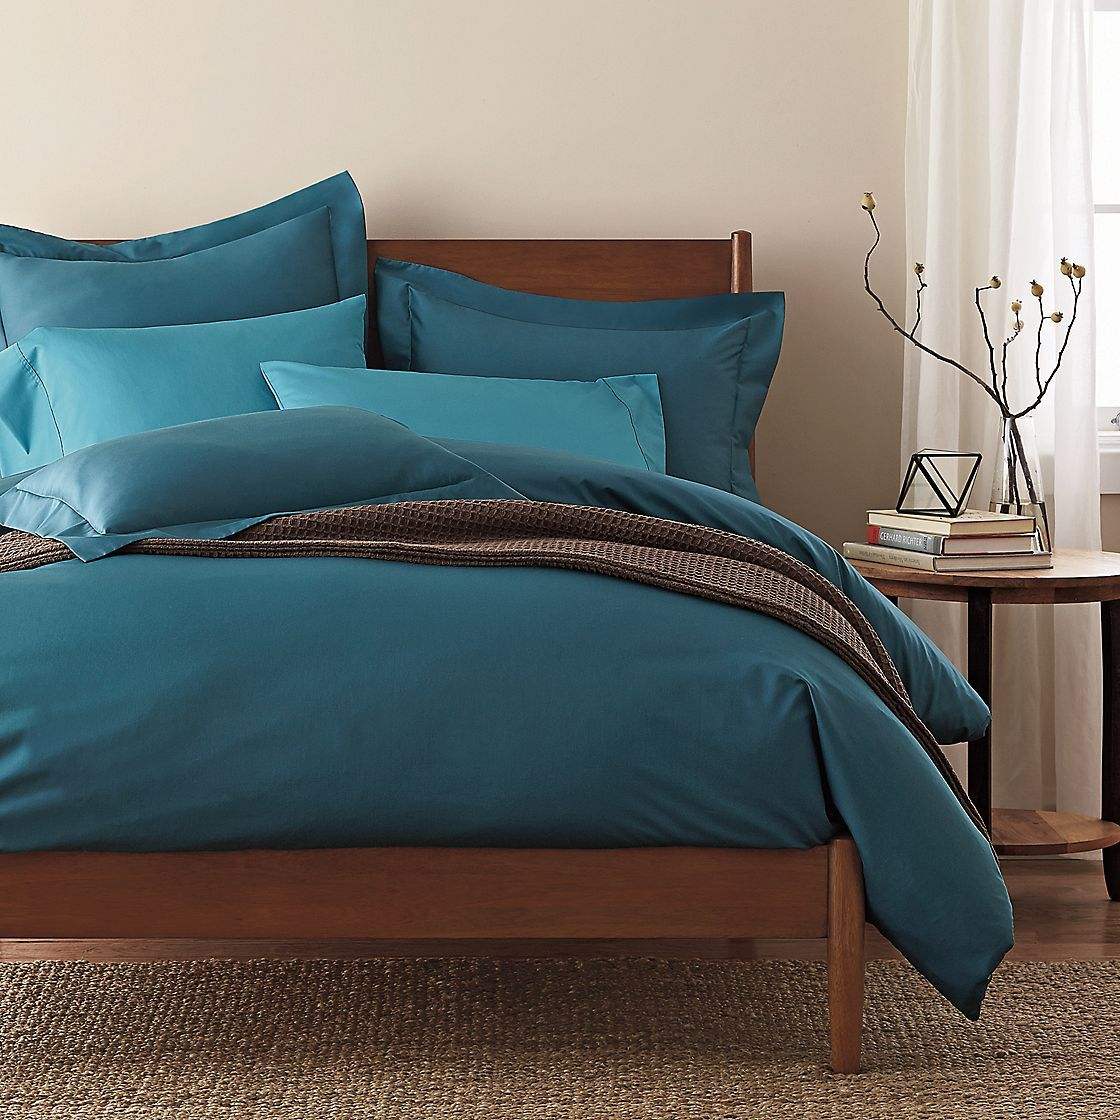 White 300-Thread Count Wrinkle-Free Sateen Duvet Cover | The Company Store - use code TSFAL1 for 15% off + free ship- exp 10/31/15